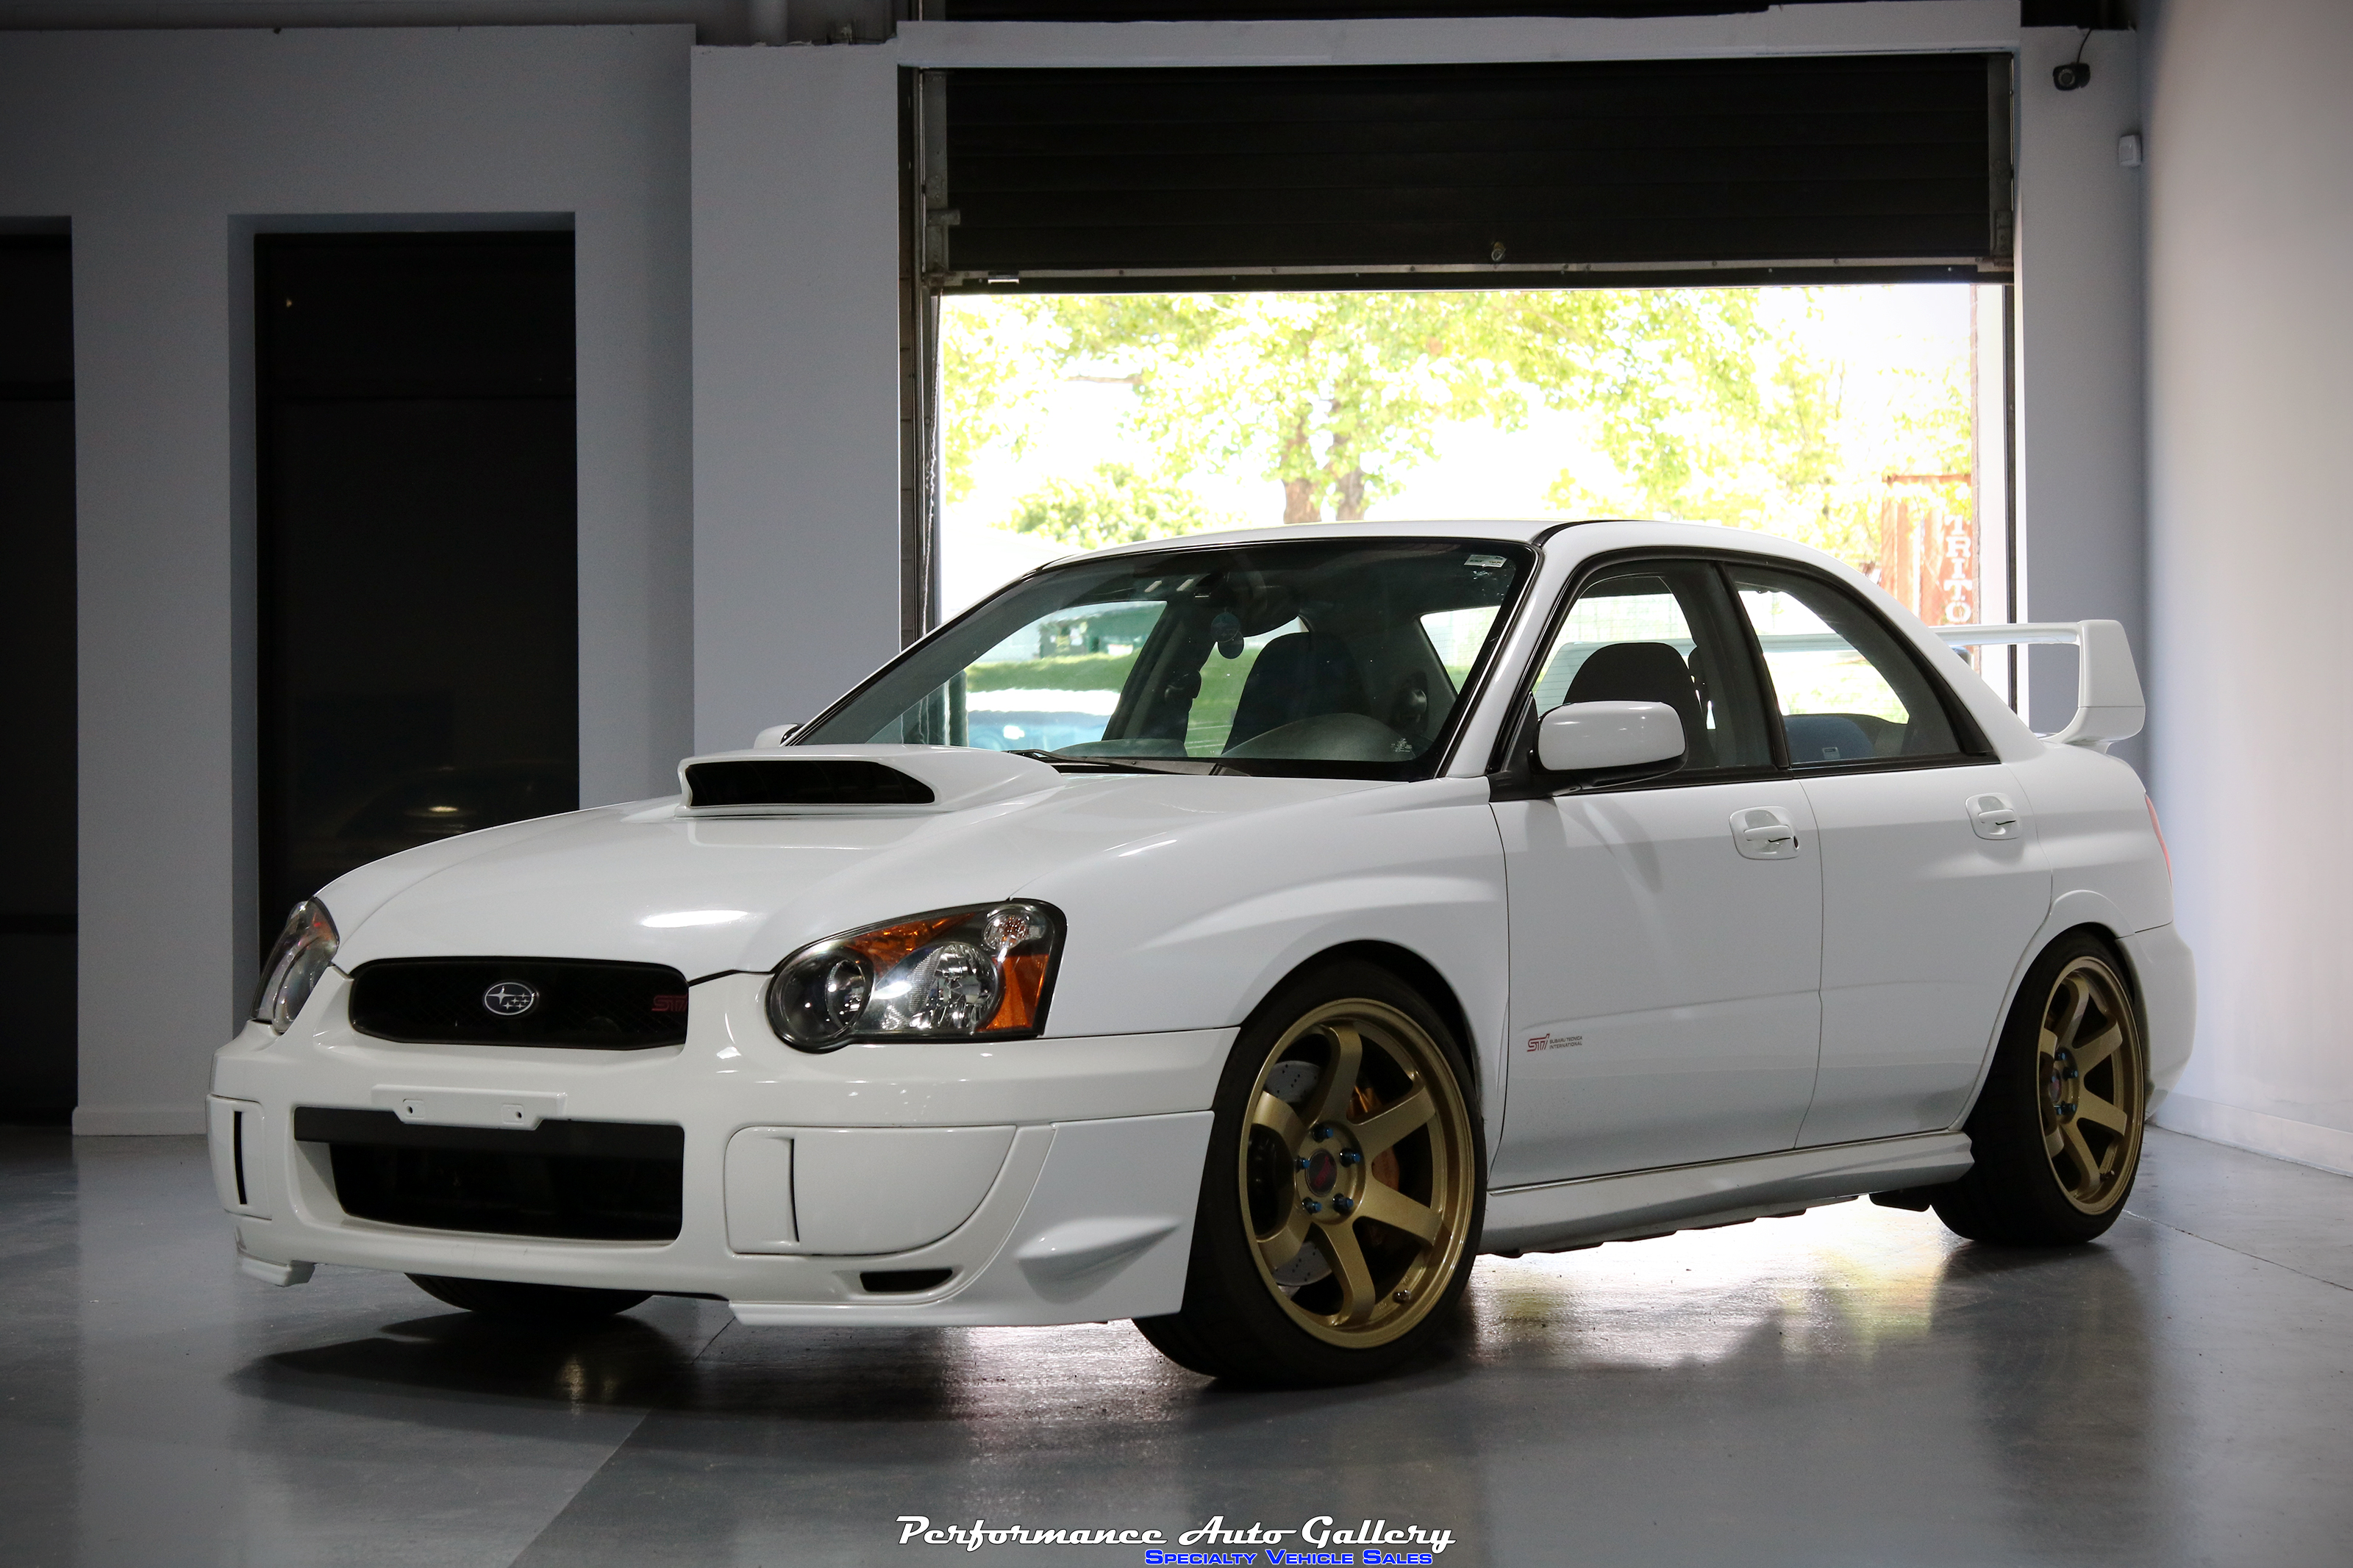 Subaru Archives - Page 2 of 4 -